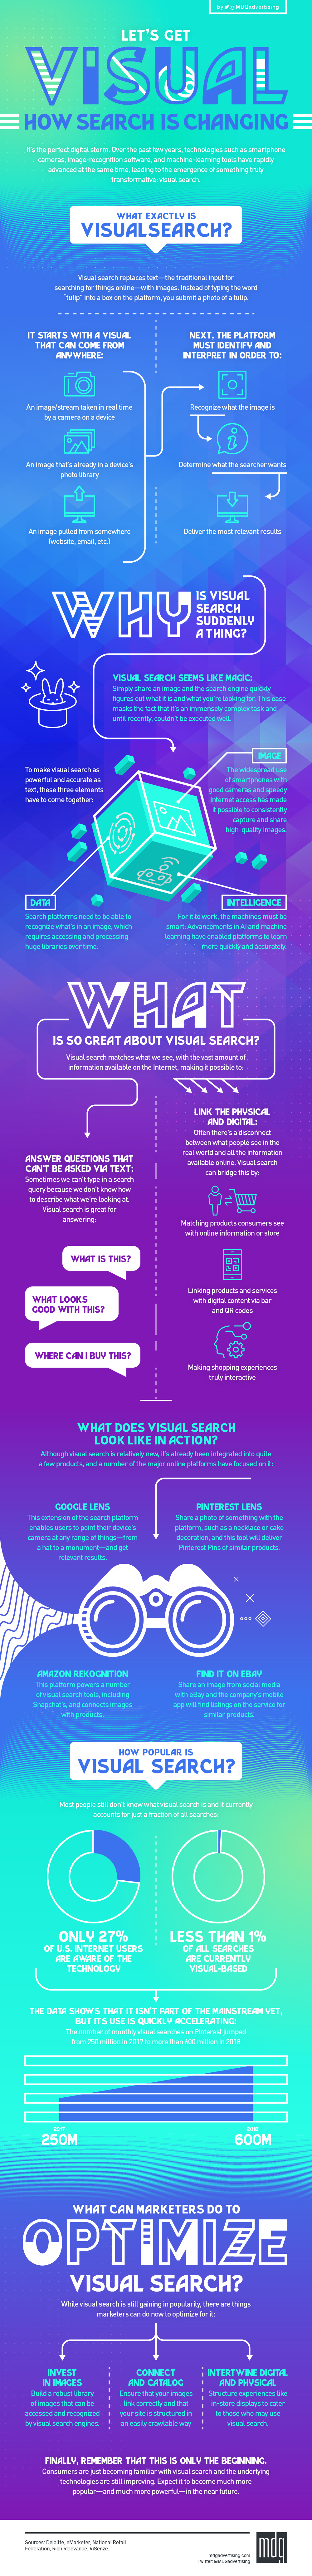 Infographic provides an overview of visual search trends